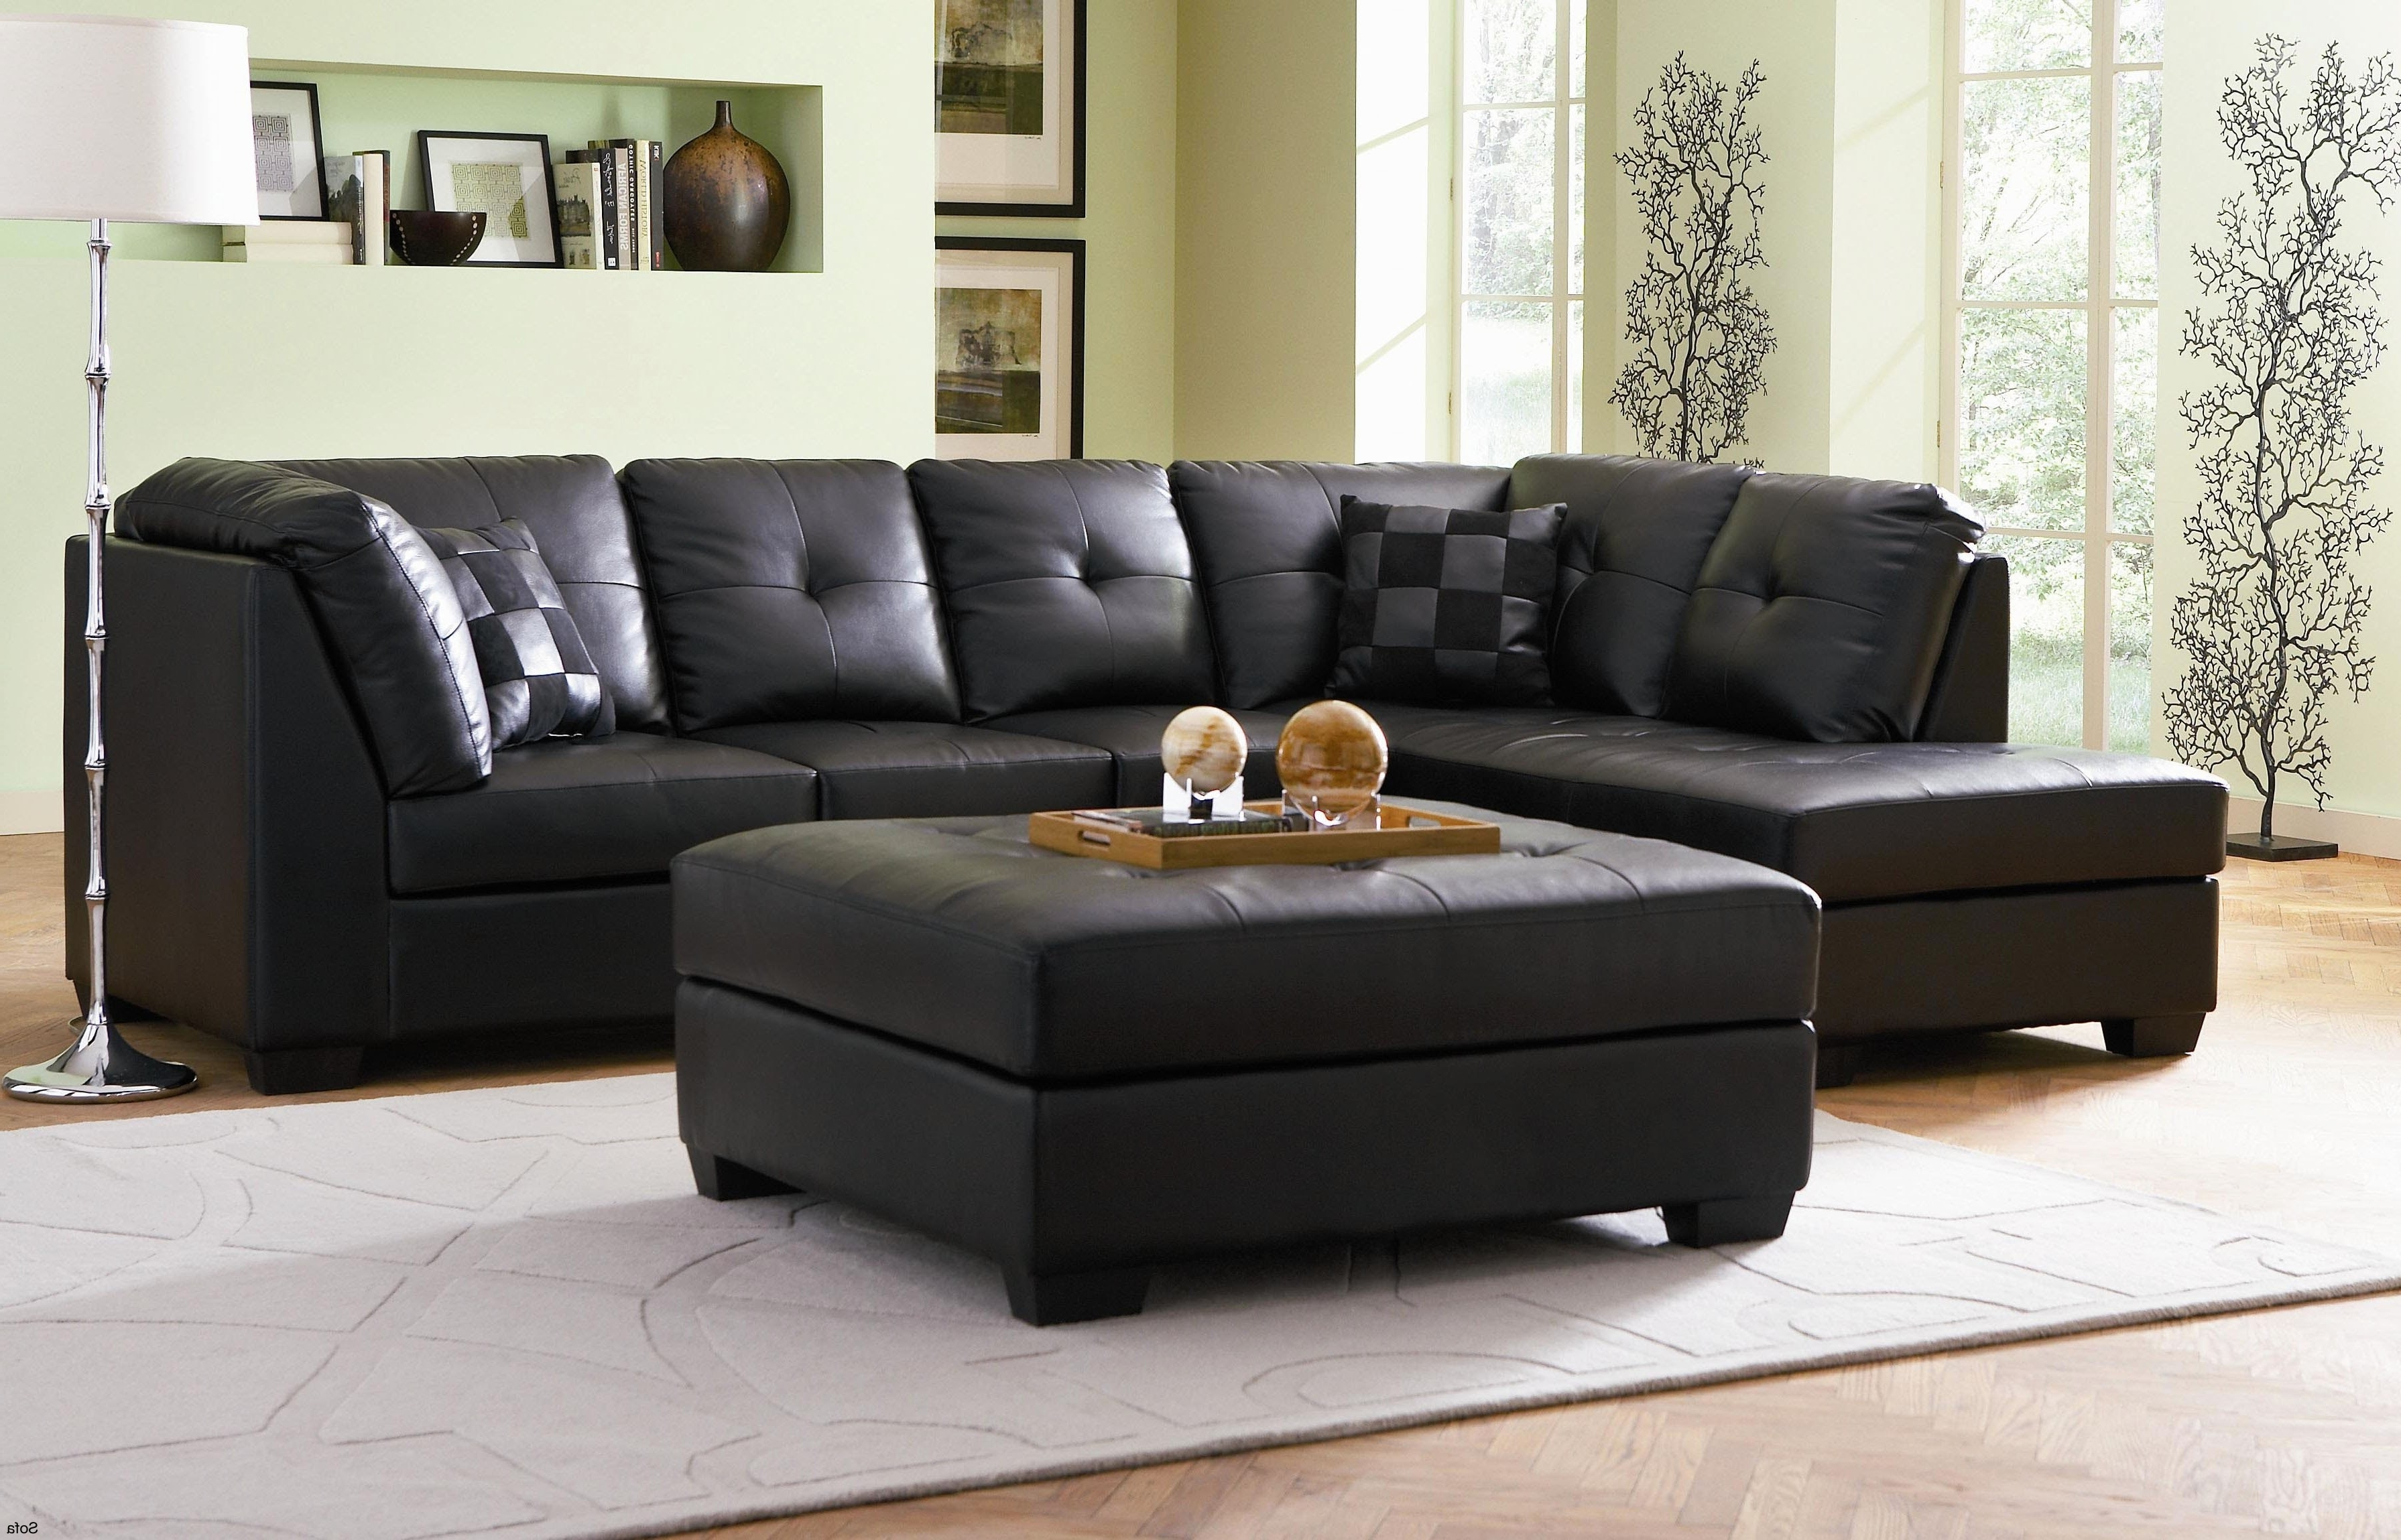 Sectional Sofas At Amazon In Popular Maxresdefault Amazon Sofa Set Cheap Sectional Sofas For Sale (View 5 of 15)